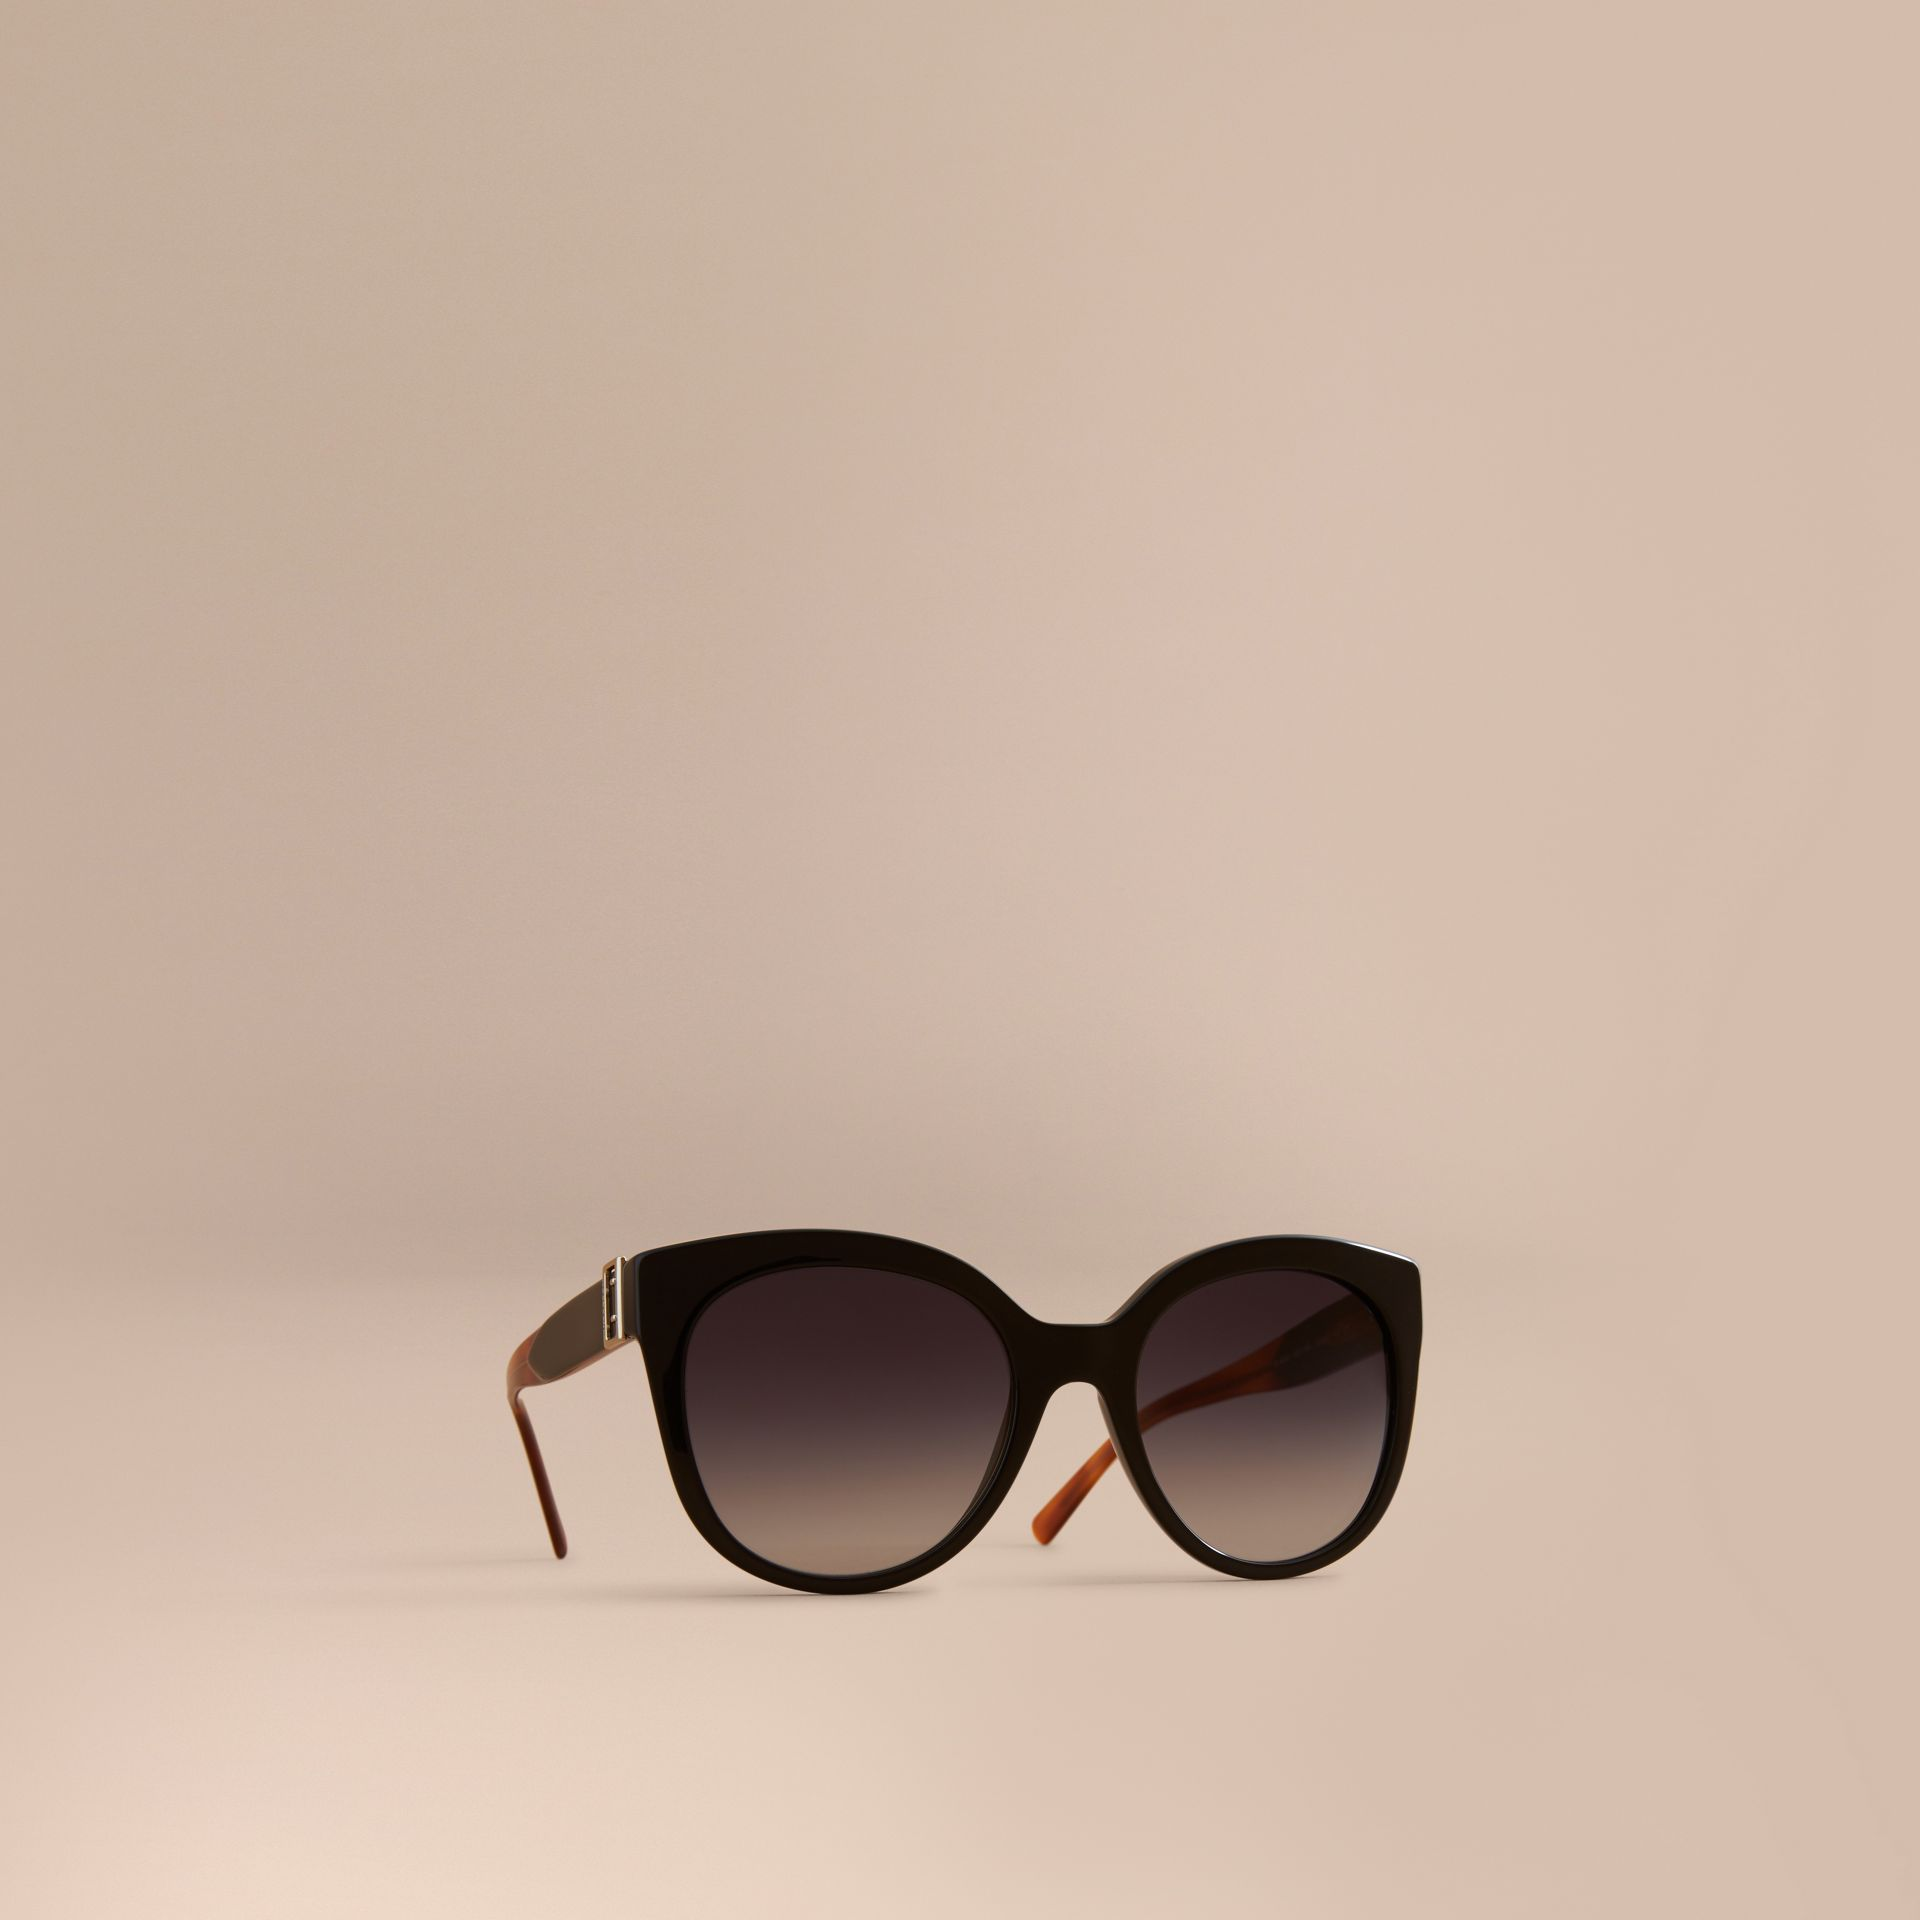 Buckle Detail Cat-eye Frame Sunglasses in Black - Women | Burberry United States - gallery image 1